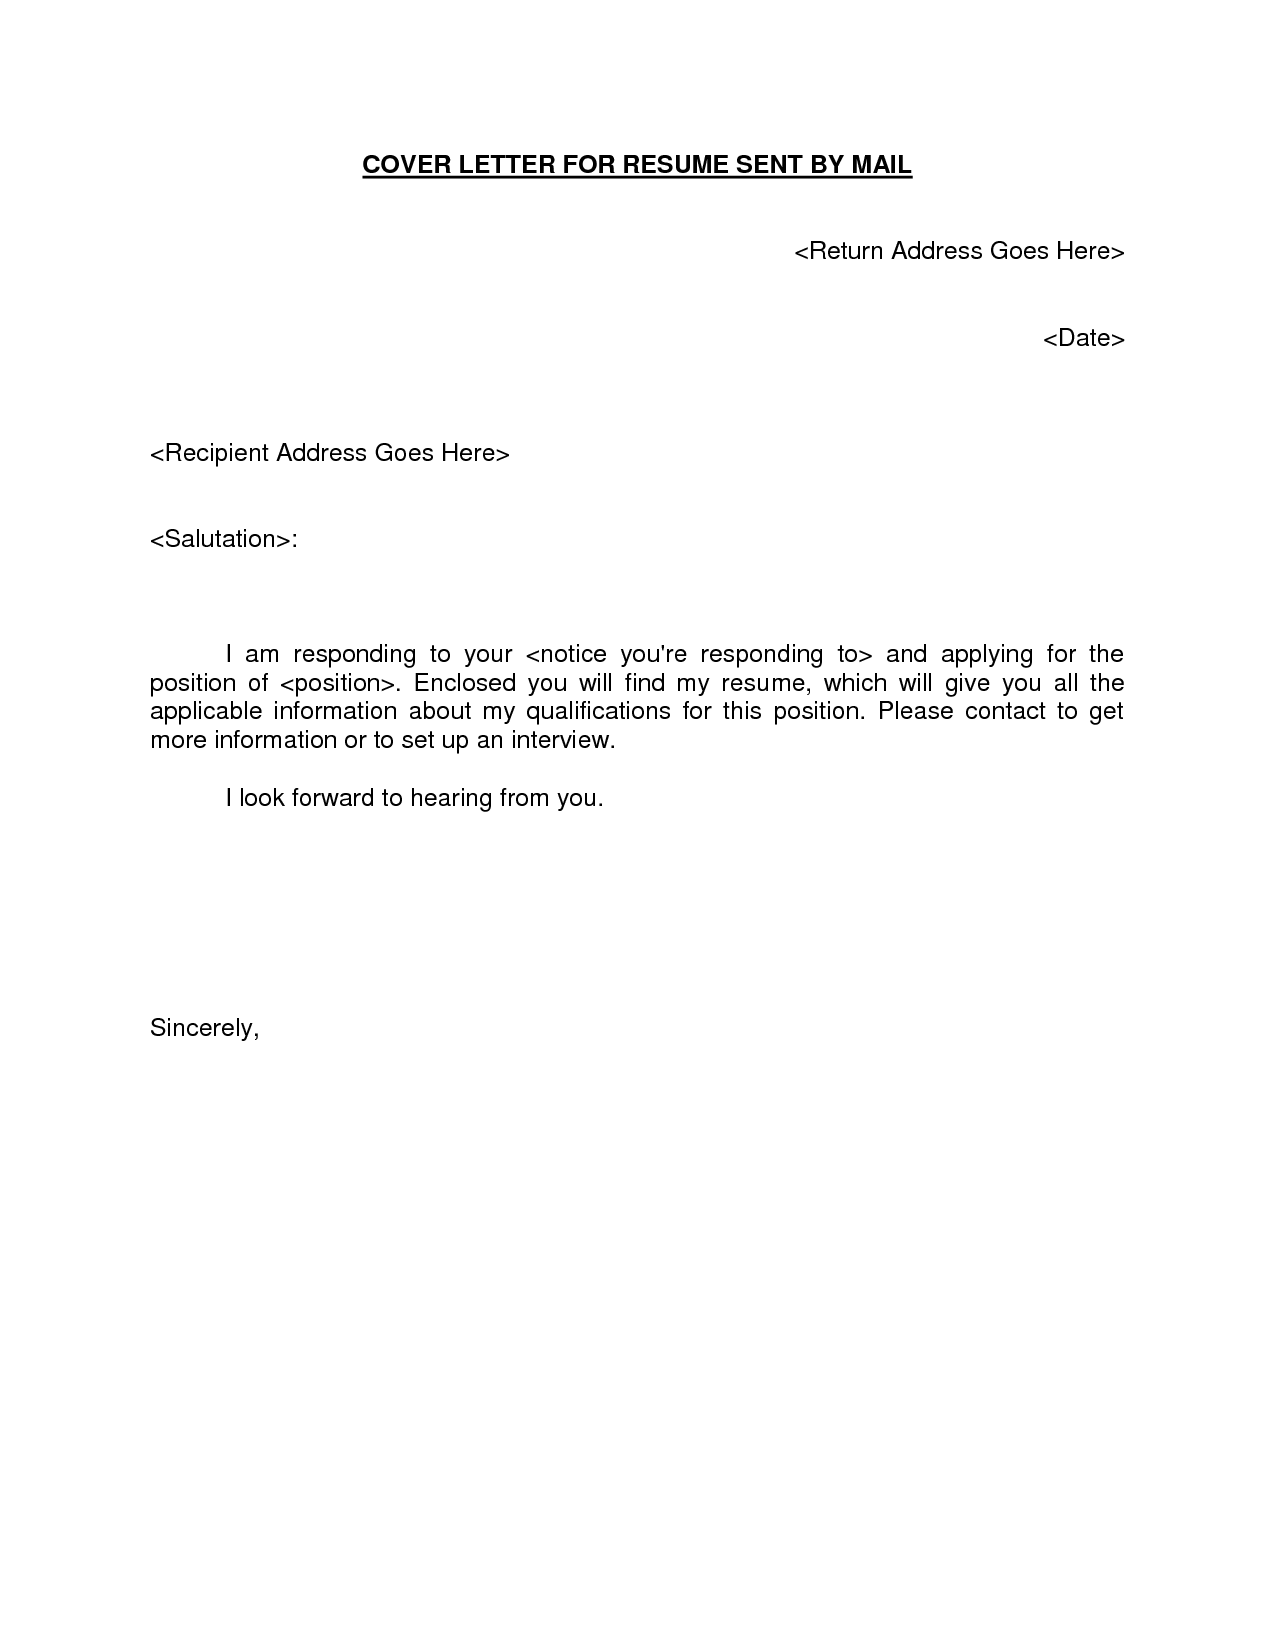 How To Properly Write An Address On A Resume  SpeakGrownupsMl